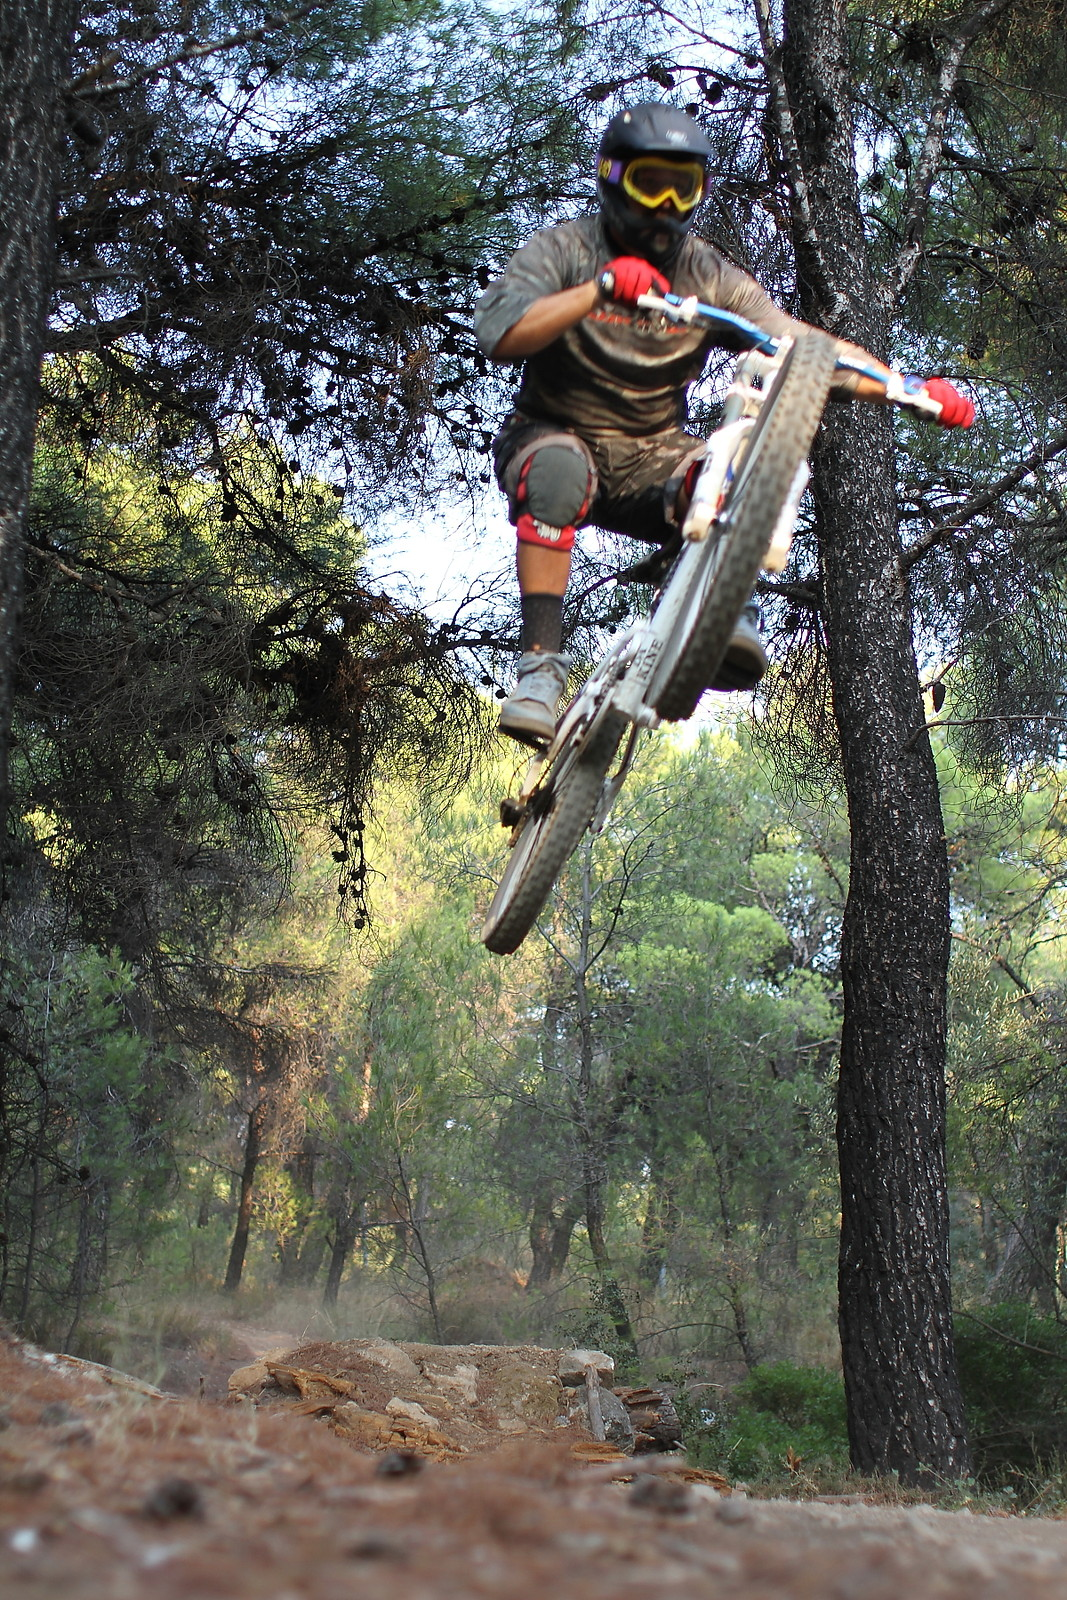 parnitha trail - Yohan.panou - Mountain Biking Pictures - Vital MTB